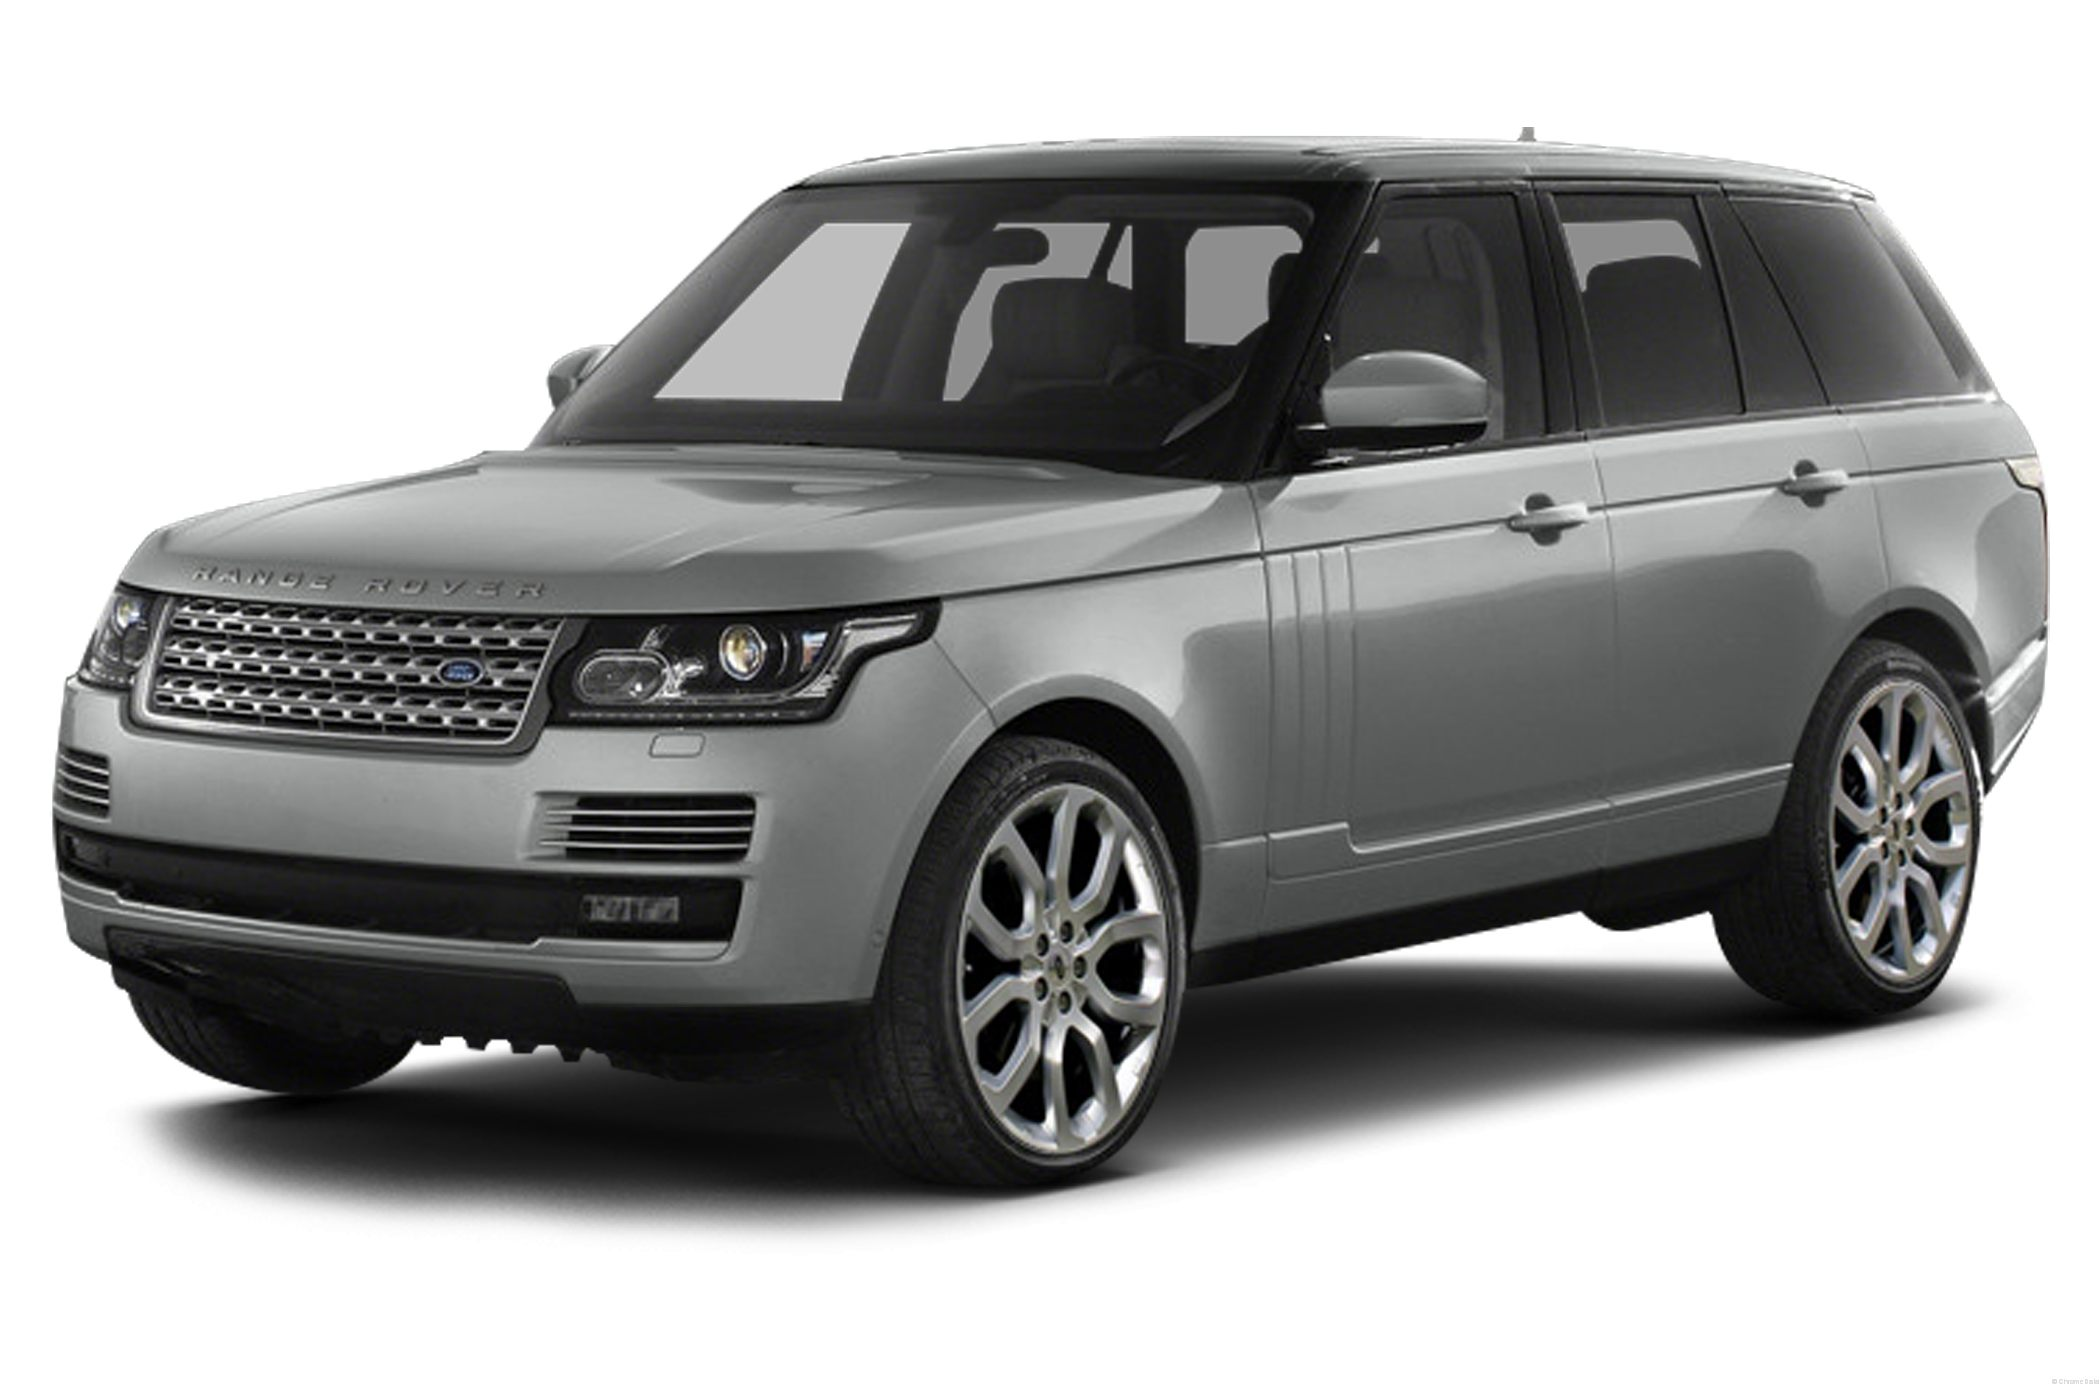 2013 land rover range rover photos informations articles. Black Bedroom Furniture Sets. Home Design Ideas